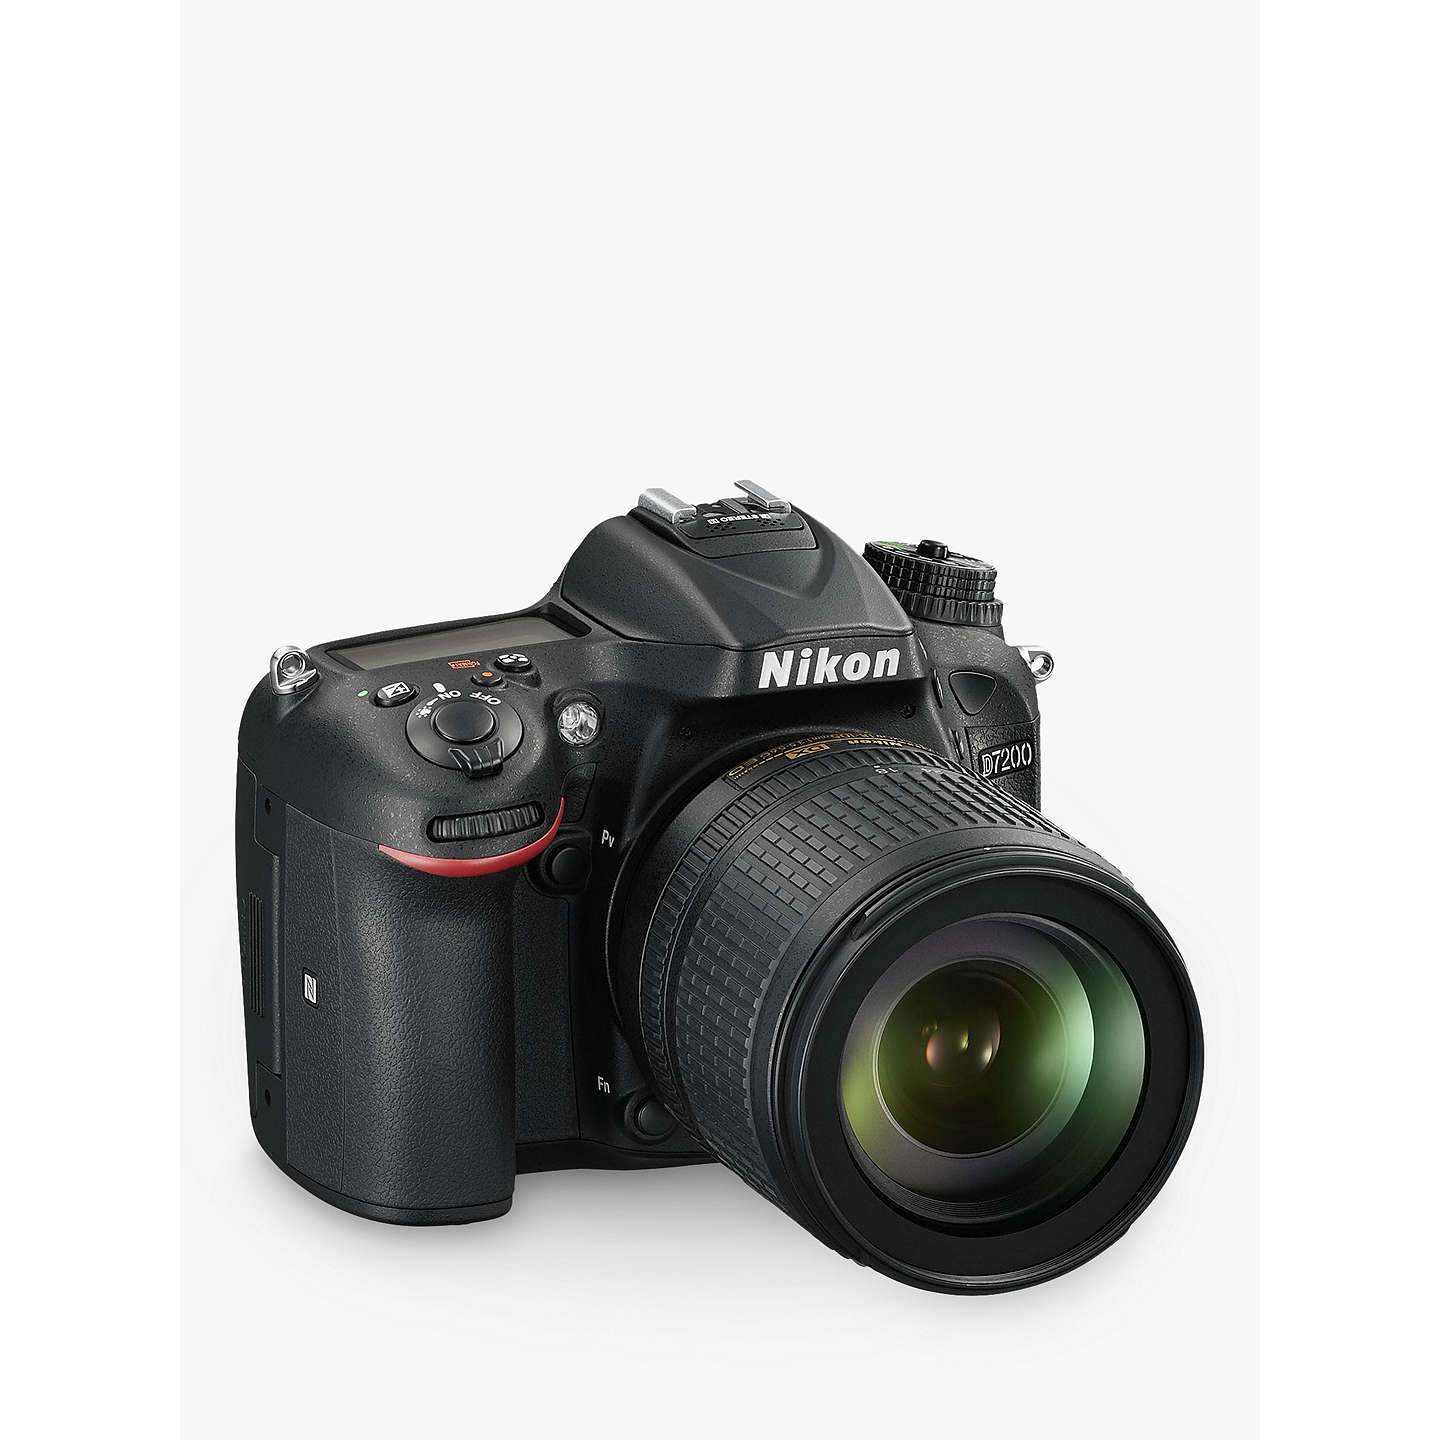 "BuyNikon D7200 DSLR Camera with 18-105mm VR Lens, 24.2 MP, HD 1080p, Built-in Wi-Fi, NFC, 3"" LCD Screen Online at johnlewis.com"